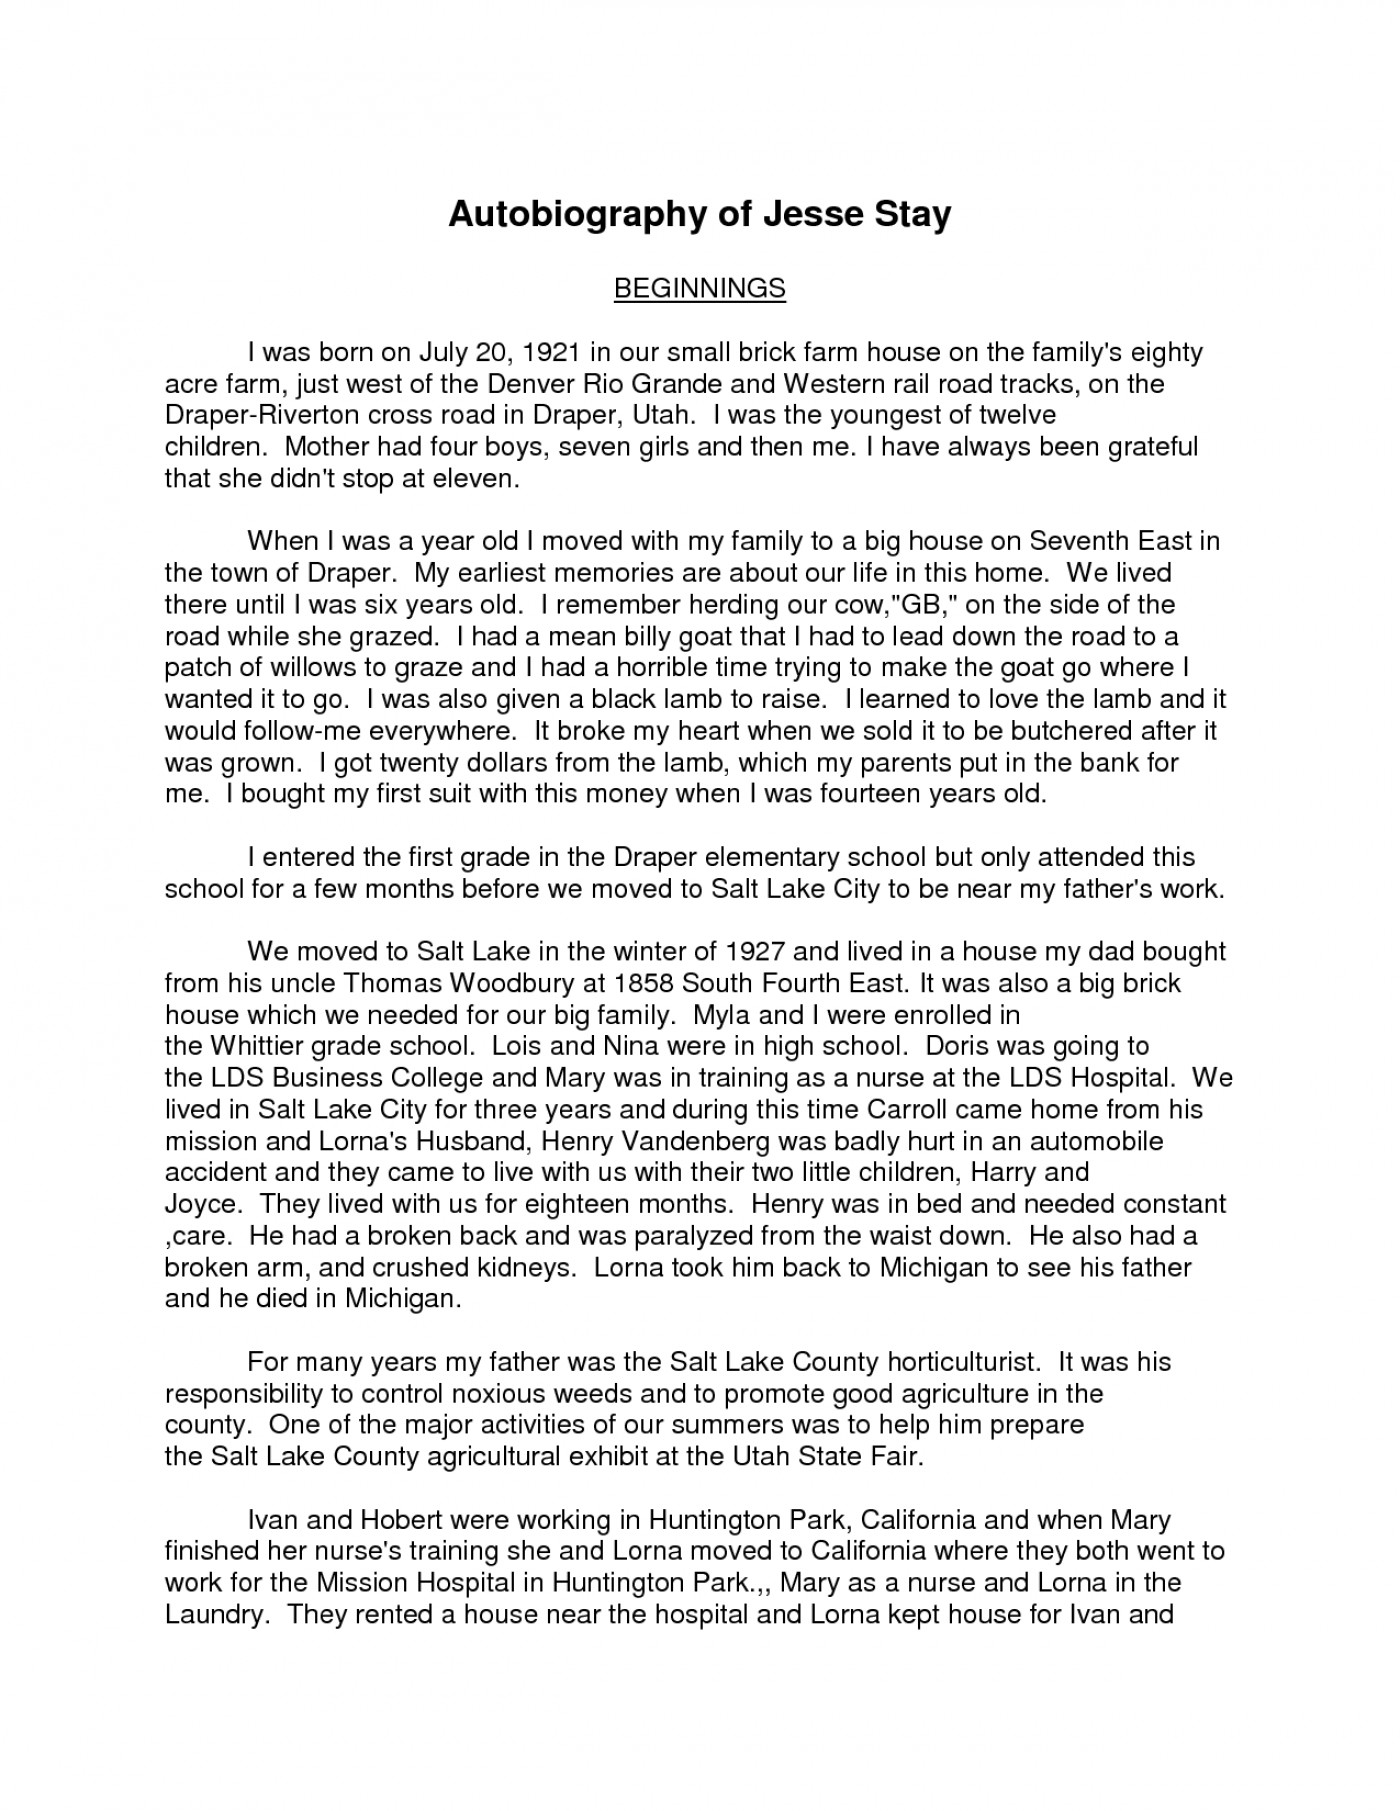 019 How To Write Autobiography Essay Samples 87168 Exceptional A An Introduction Autobiographical For College Grad School 1400